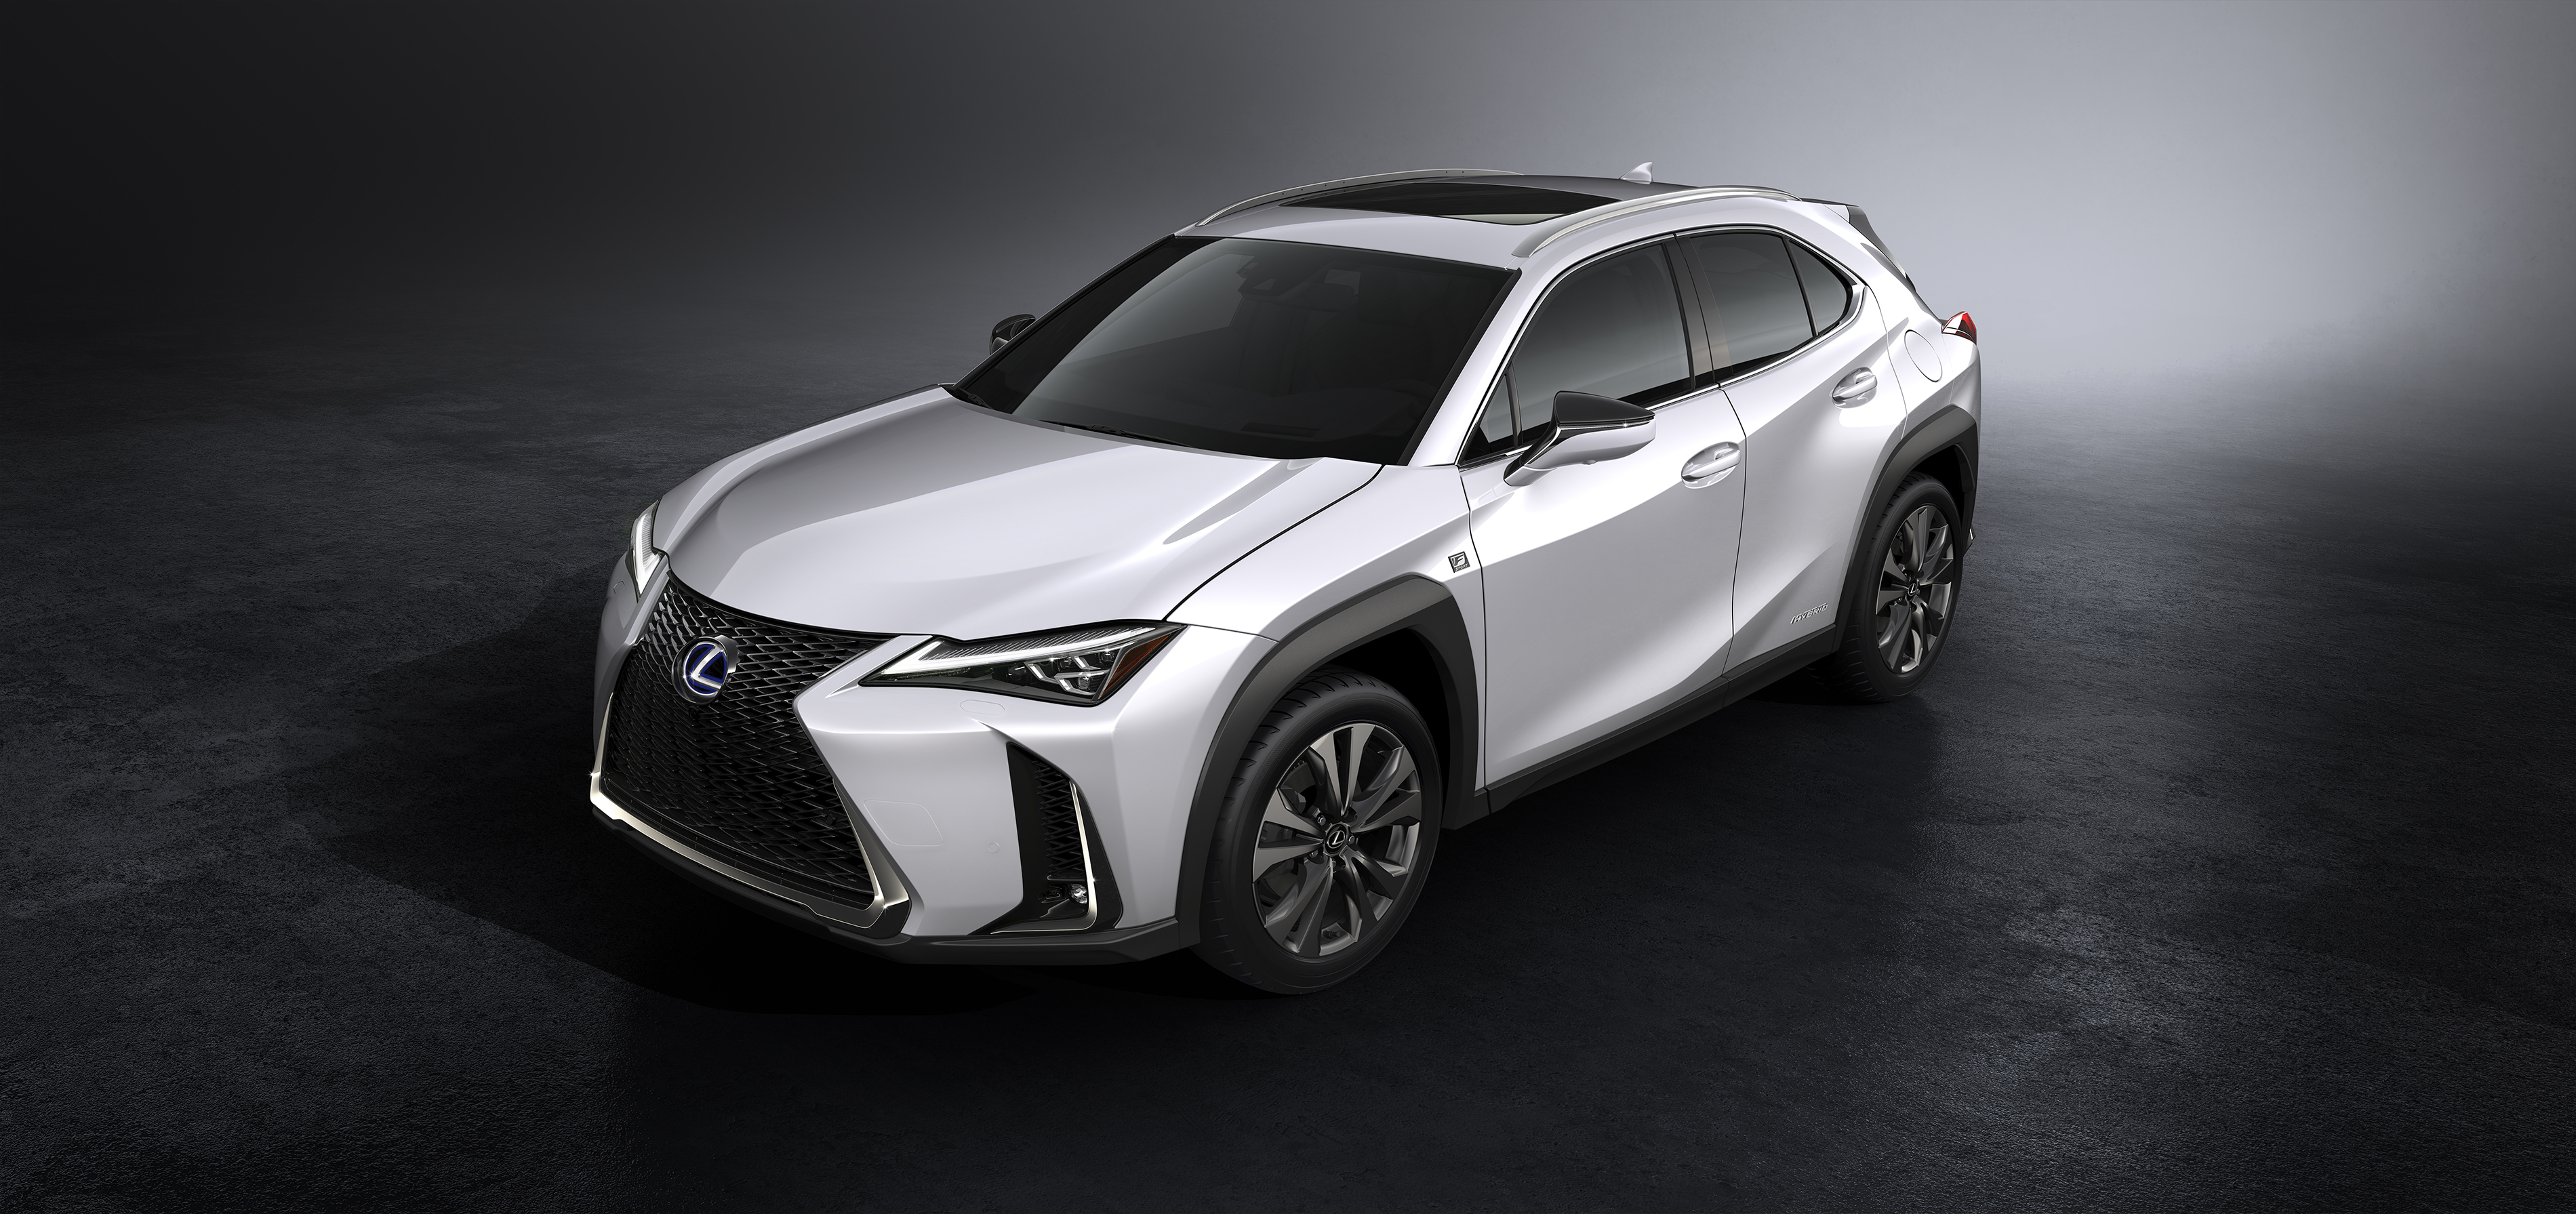 Lexus Details The Ux Subcompact Crossover In Geneva The